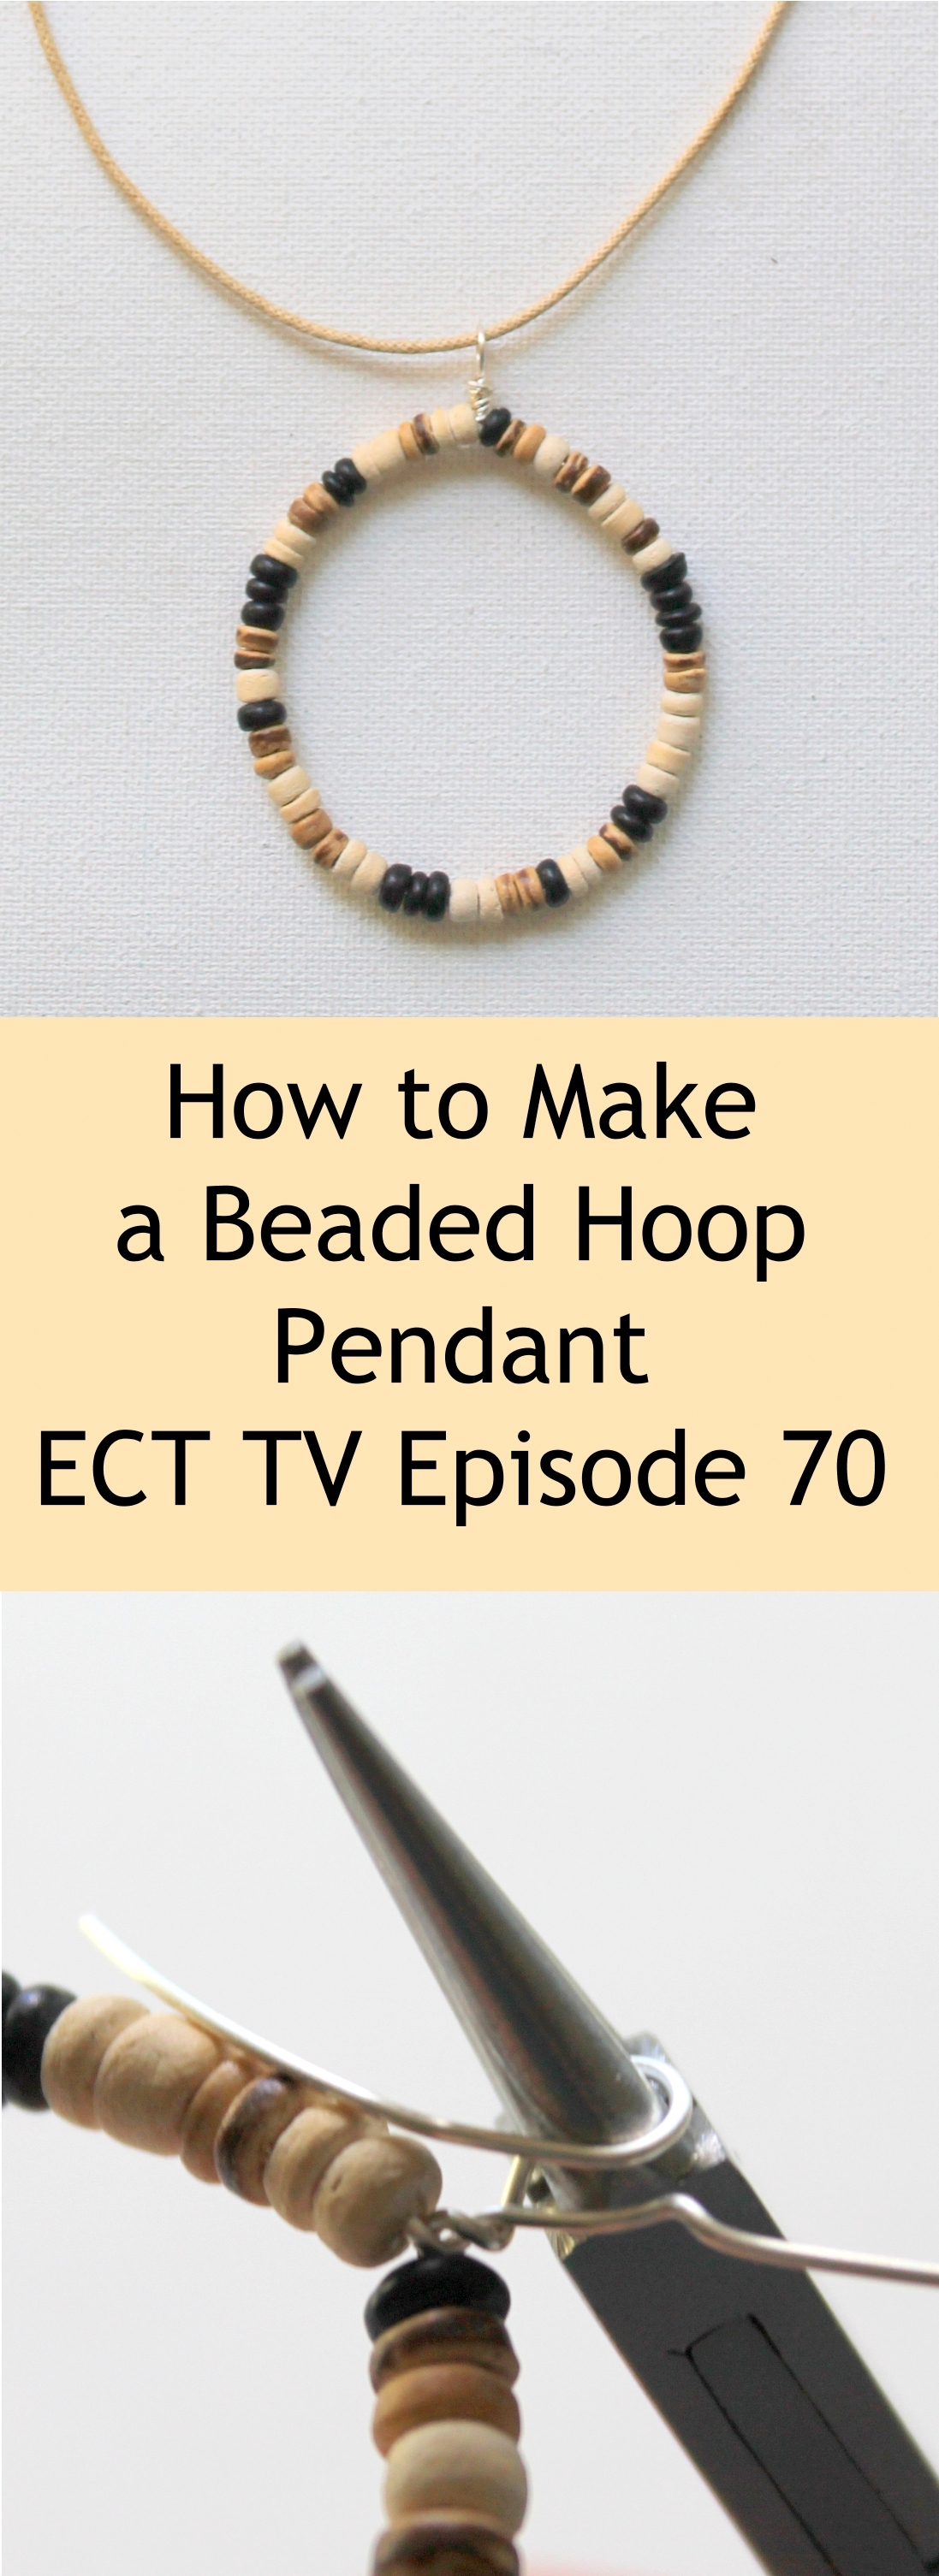 ECT TV Episode 70: Beaded Hoop Pendant Tutorial